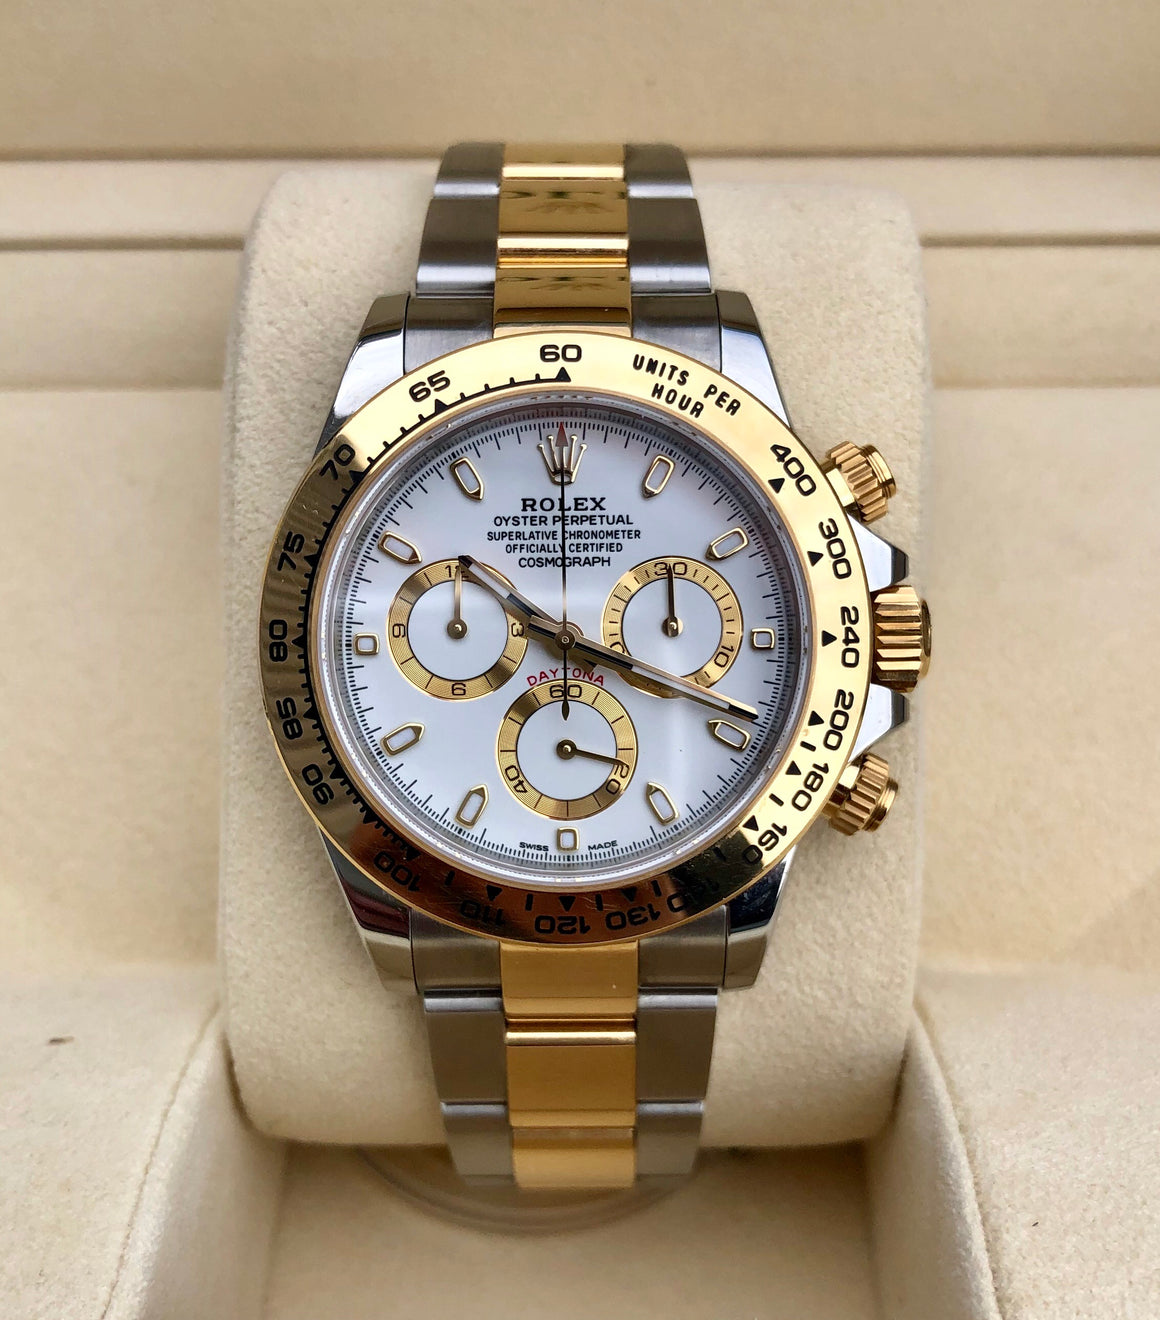 Rolex Daytona Cosmograph 116503 Two-Tone Gold Steel